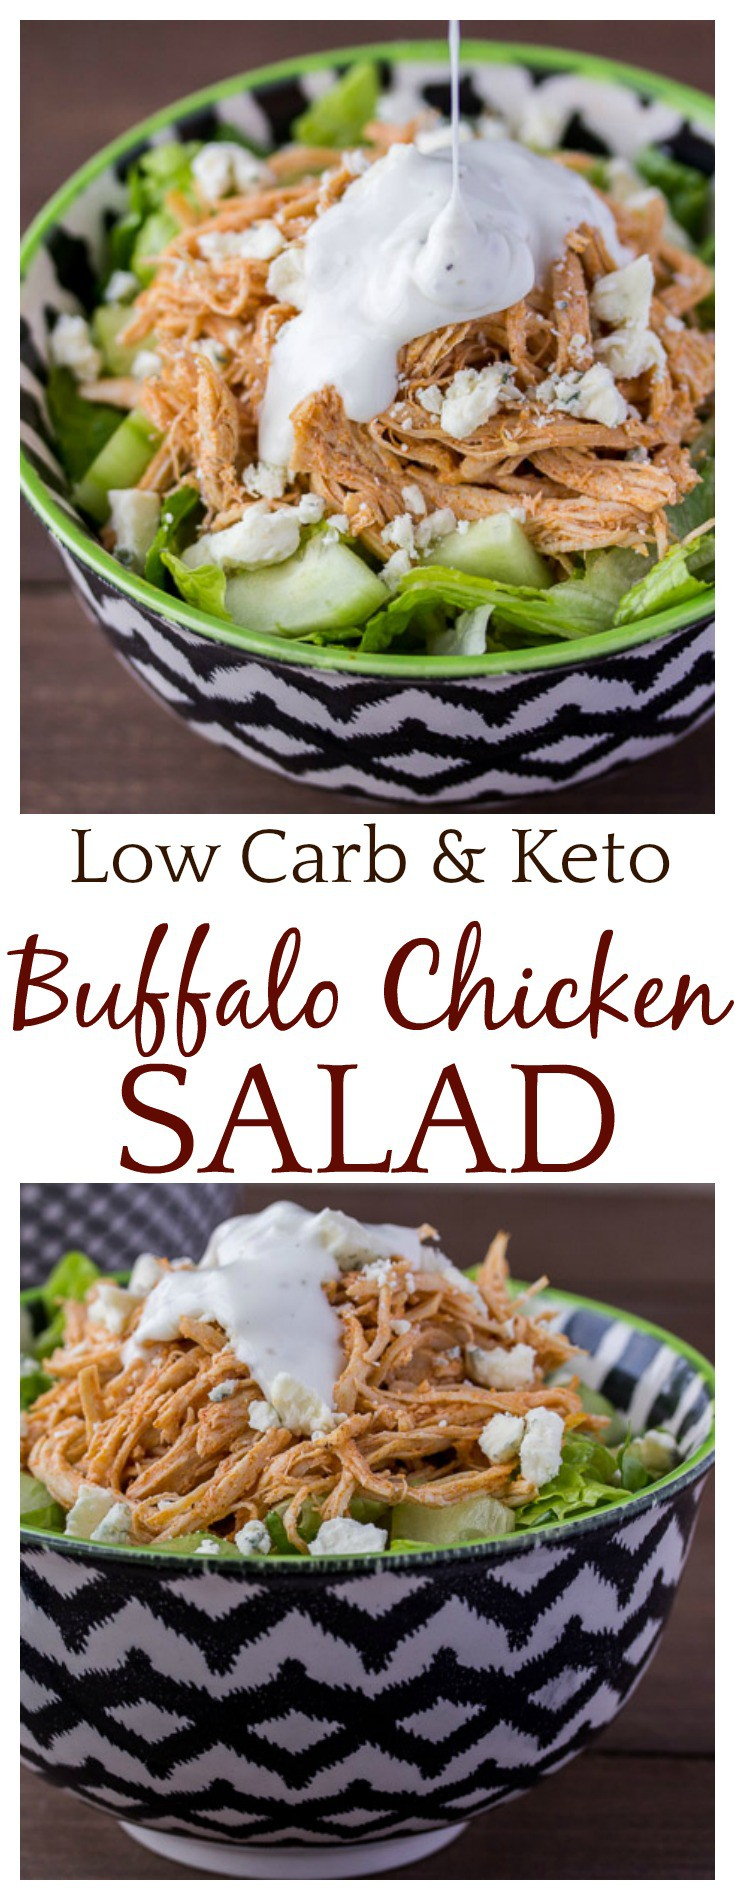 Low Carb Buffalo Chicken Salad makes a great make ahead lunch or dinner! It's also suitable for those on a keto diet and gluten free! | #lowcarb #keto #glutenfree #salad #buffalochicken #dlbrecipes #easyrecipes